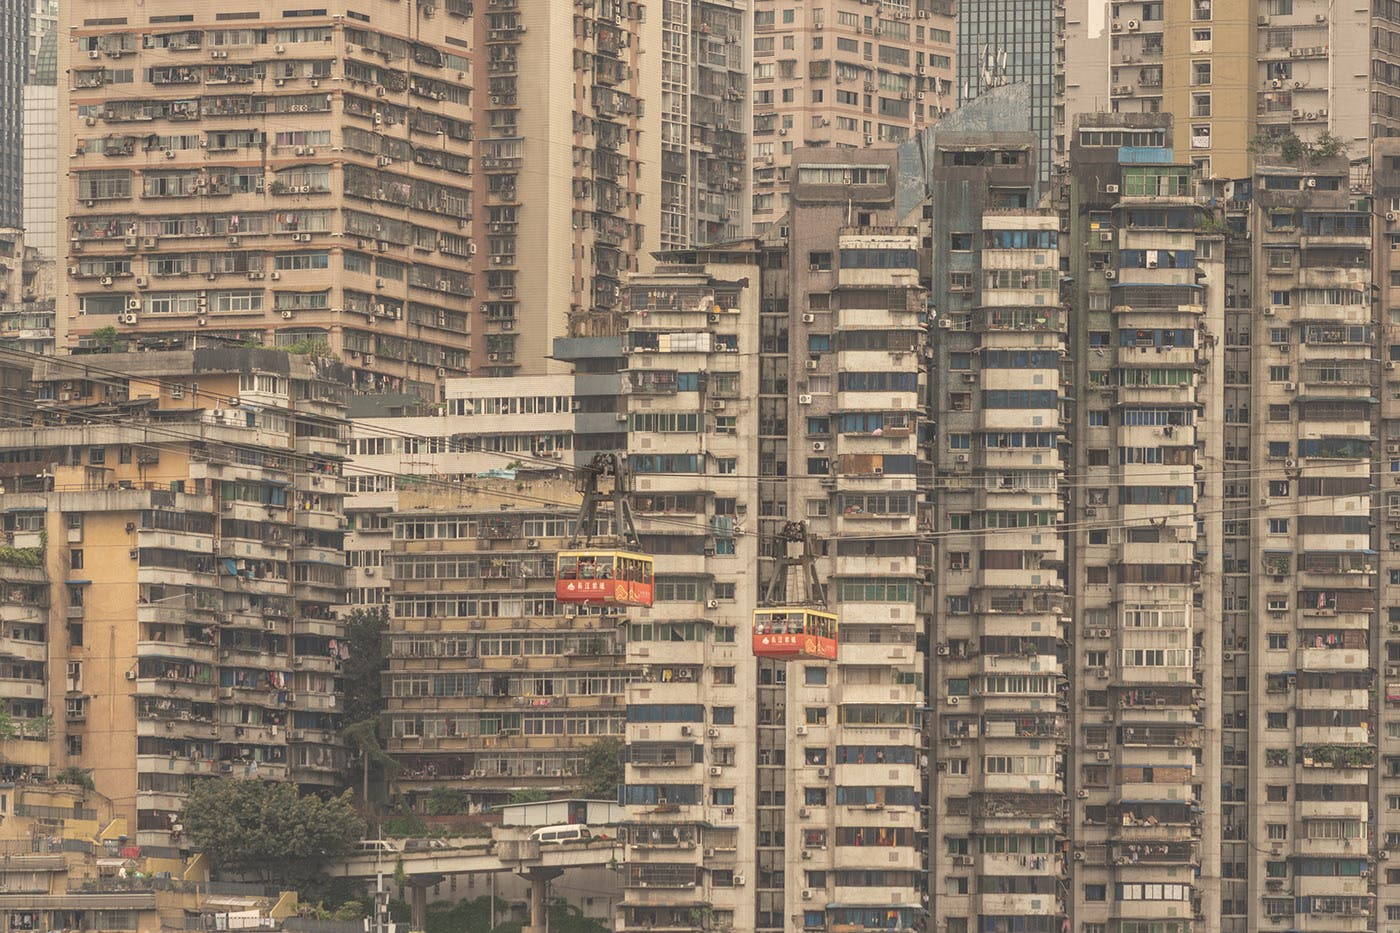 Kris Provoost Explores the Relationship Between Man and the City